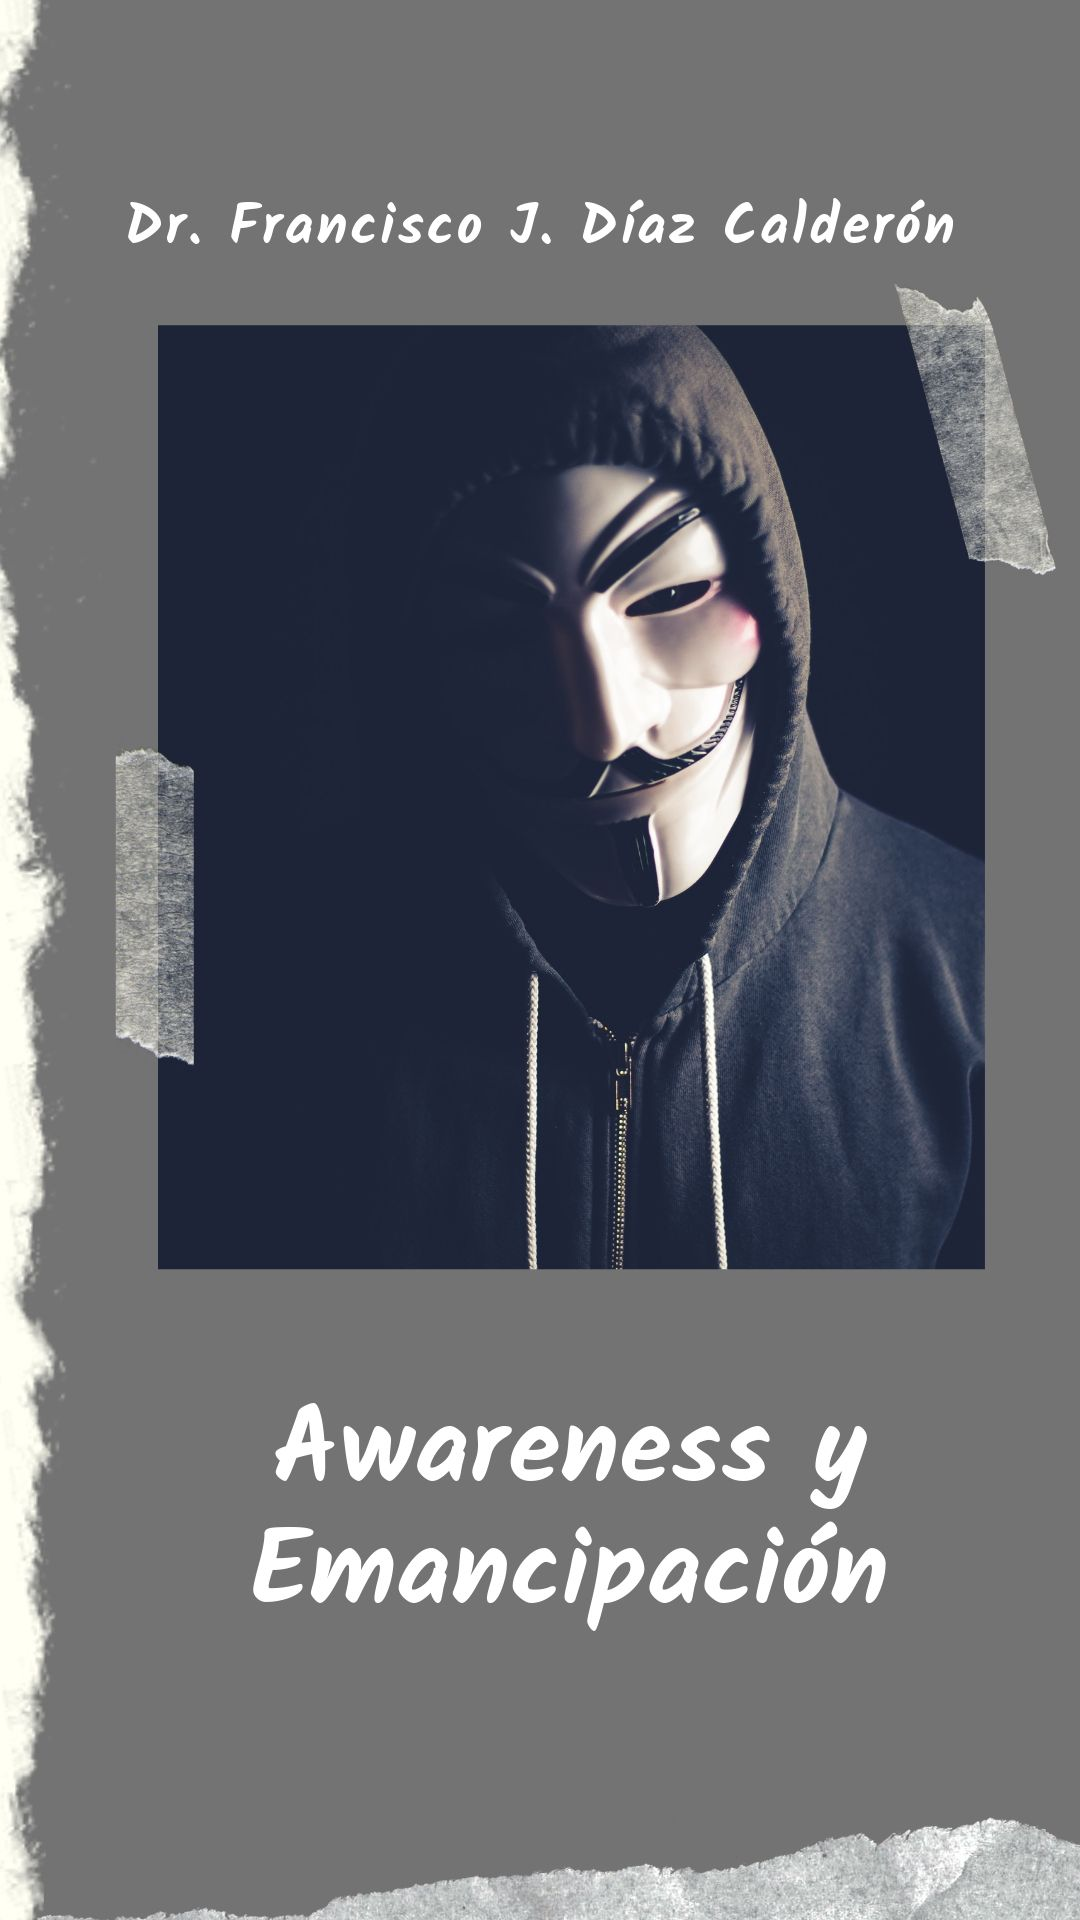 Awareness y Emancipación